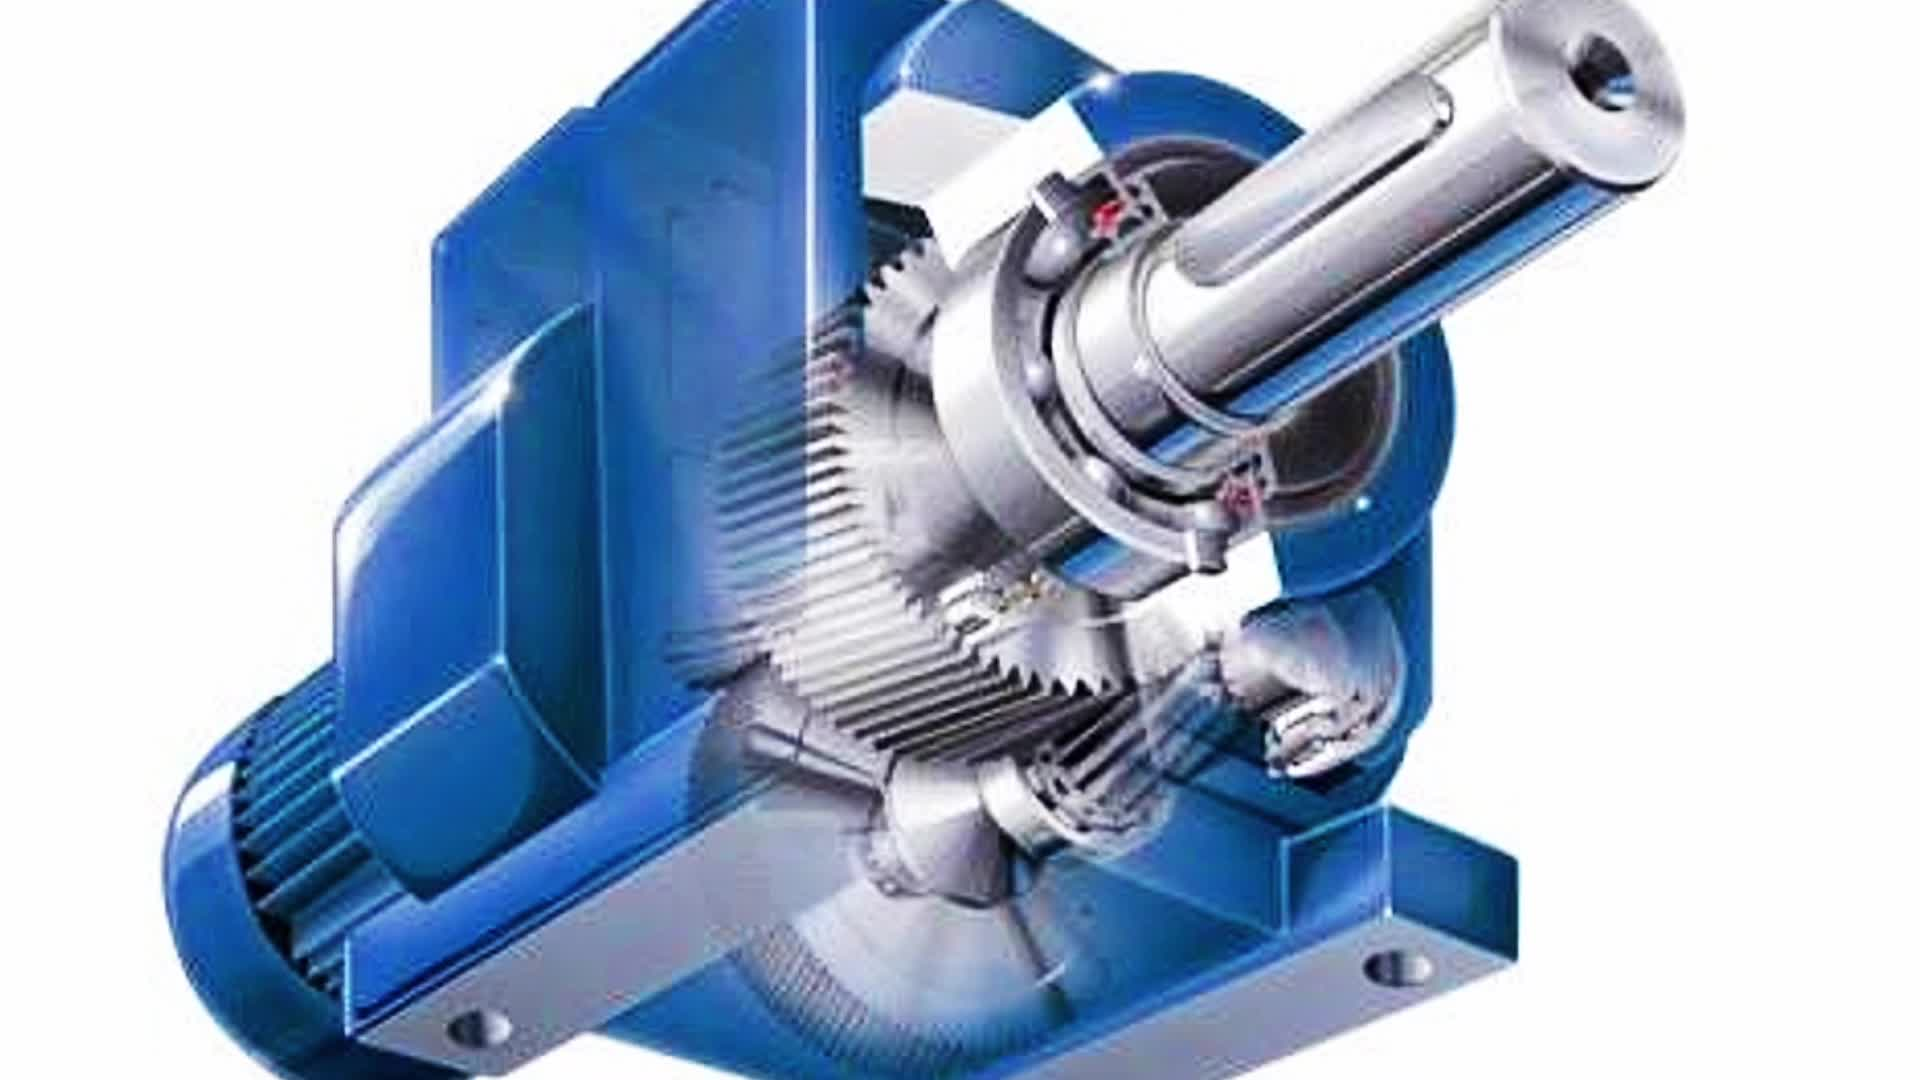 Helical Gear Box Transmission Grain Auger Gearbox - Buy Gear Box  Transmission,Grain Auger Gearbox,Helical Gearbox Transmission Product on  Alibaba.com